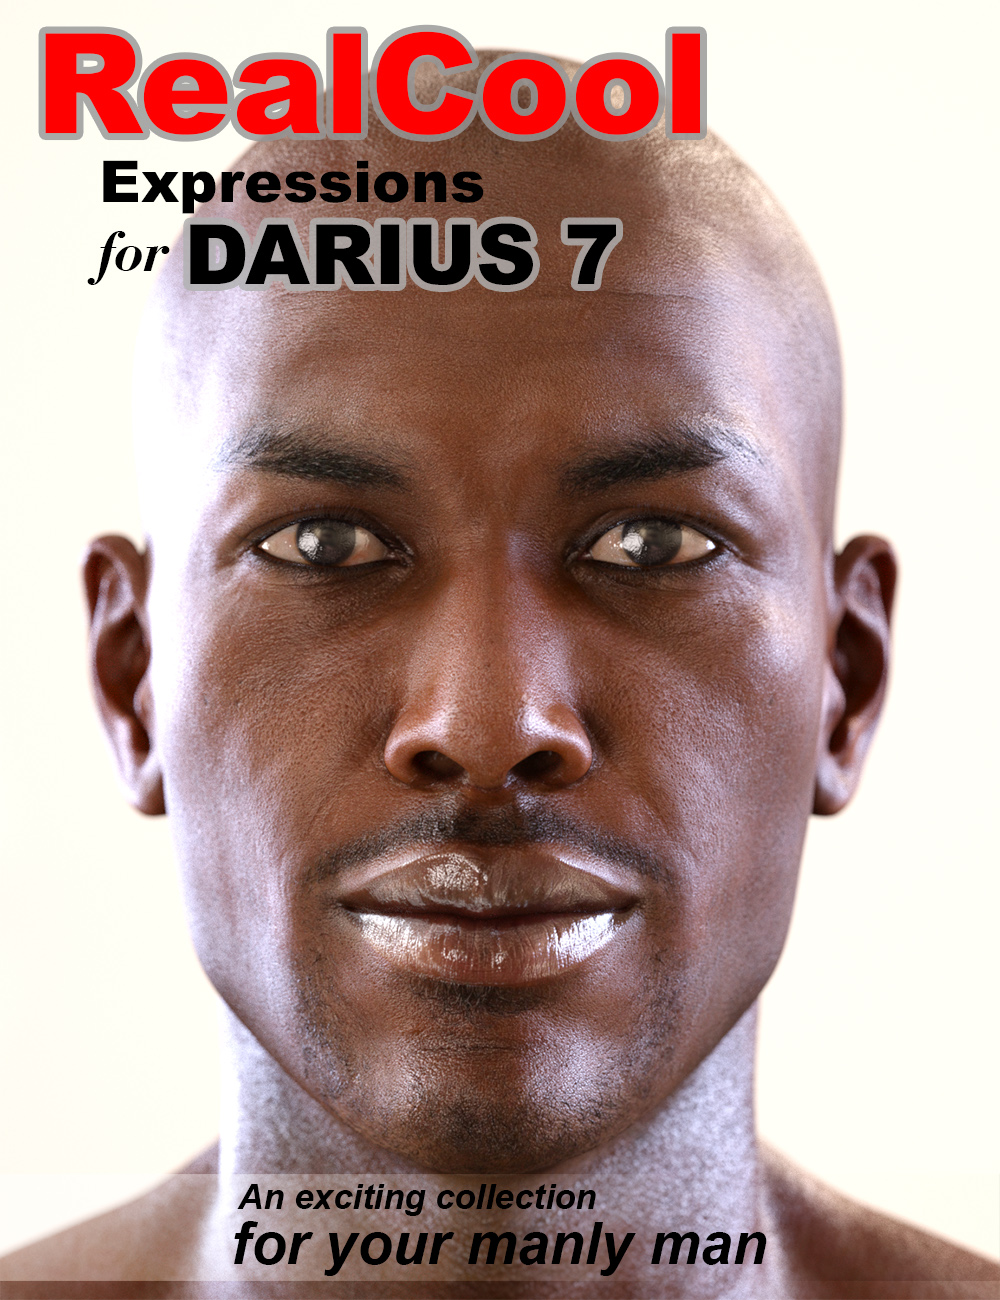 RealCool Expressions for Darius 7 by: QT168, 3D Models by Daz 3D